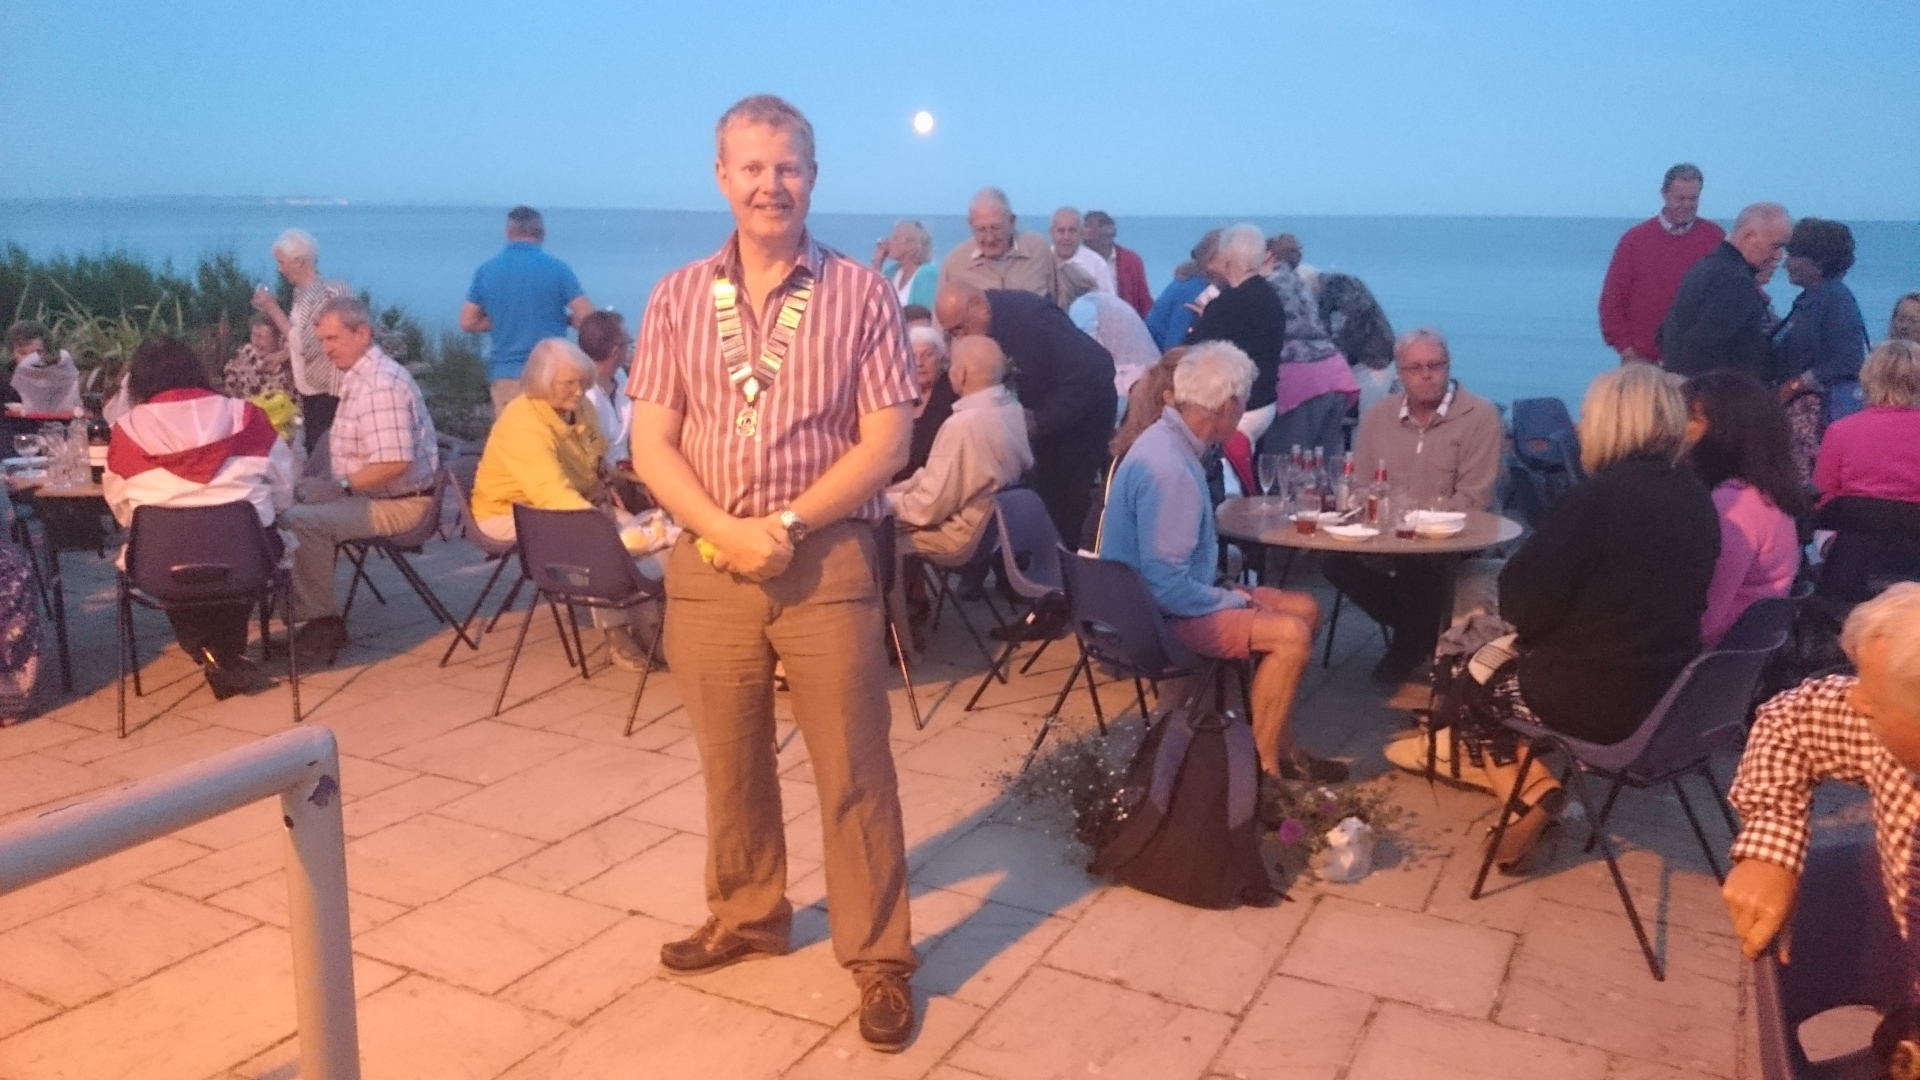 Fundraising for Chestnut Nursery with a BBQ at Branksome Dene Chine